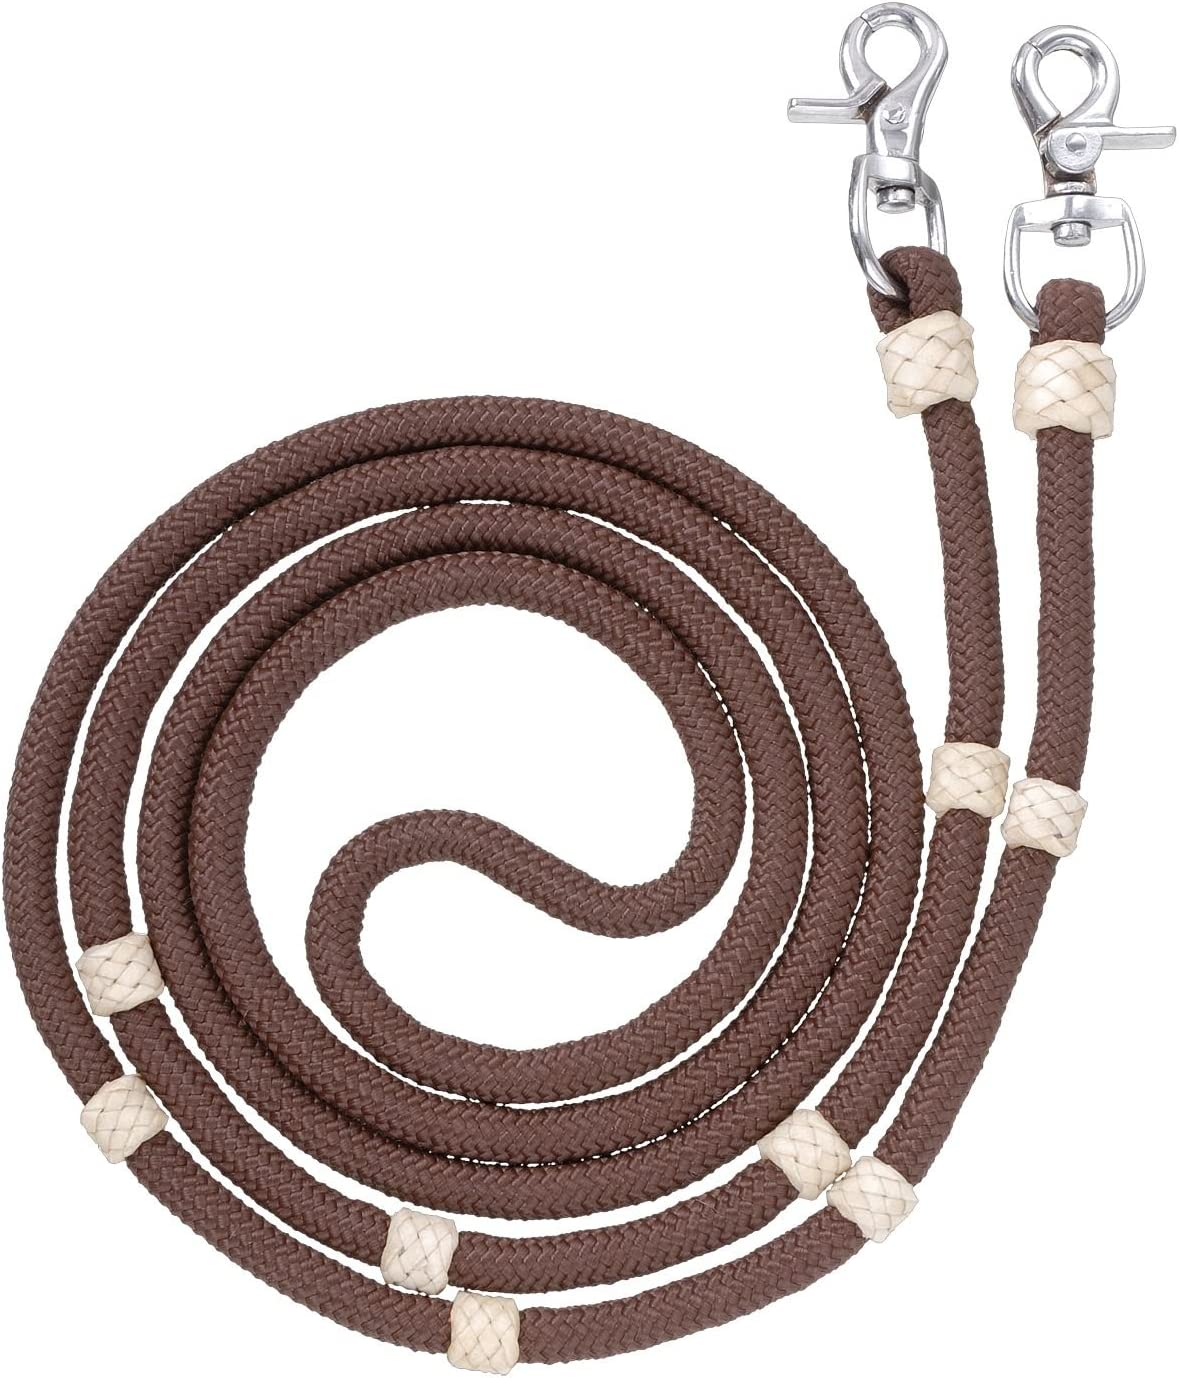 Tough Raleigh Mall outlet 1 Royal King Roping Braided Contest Reins